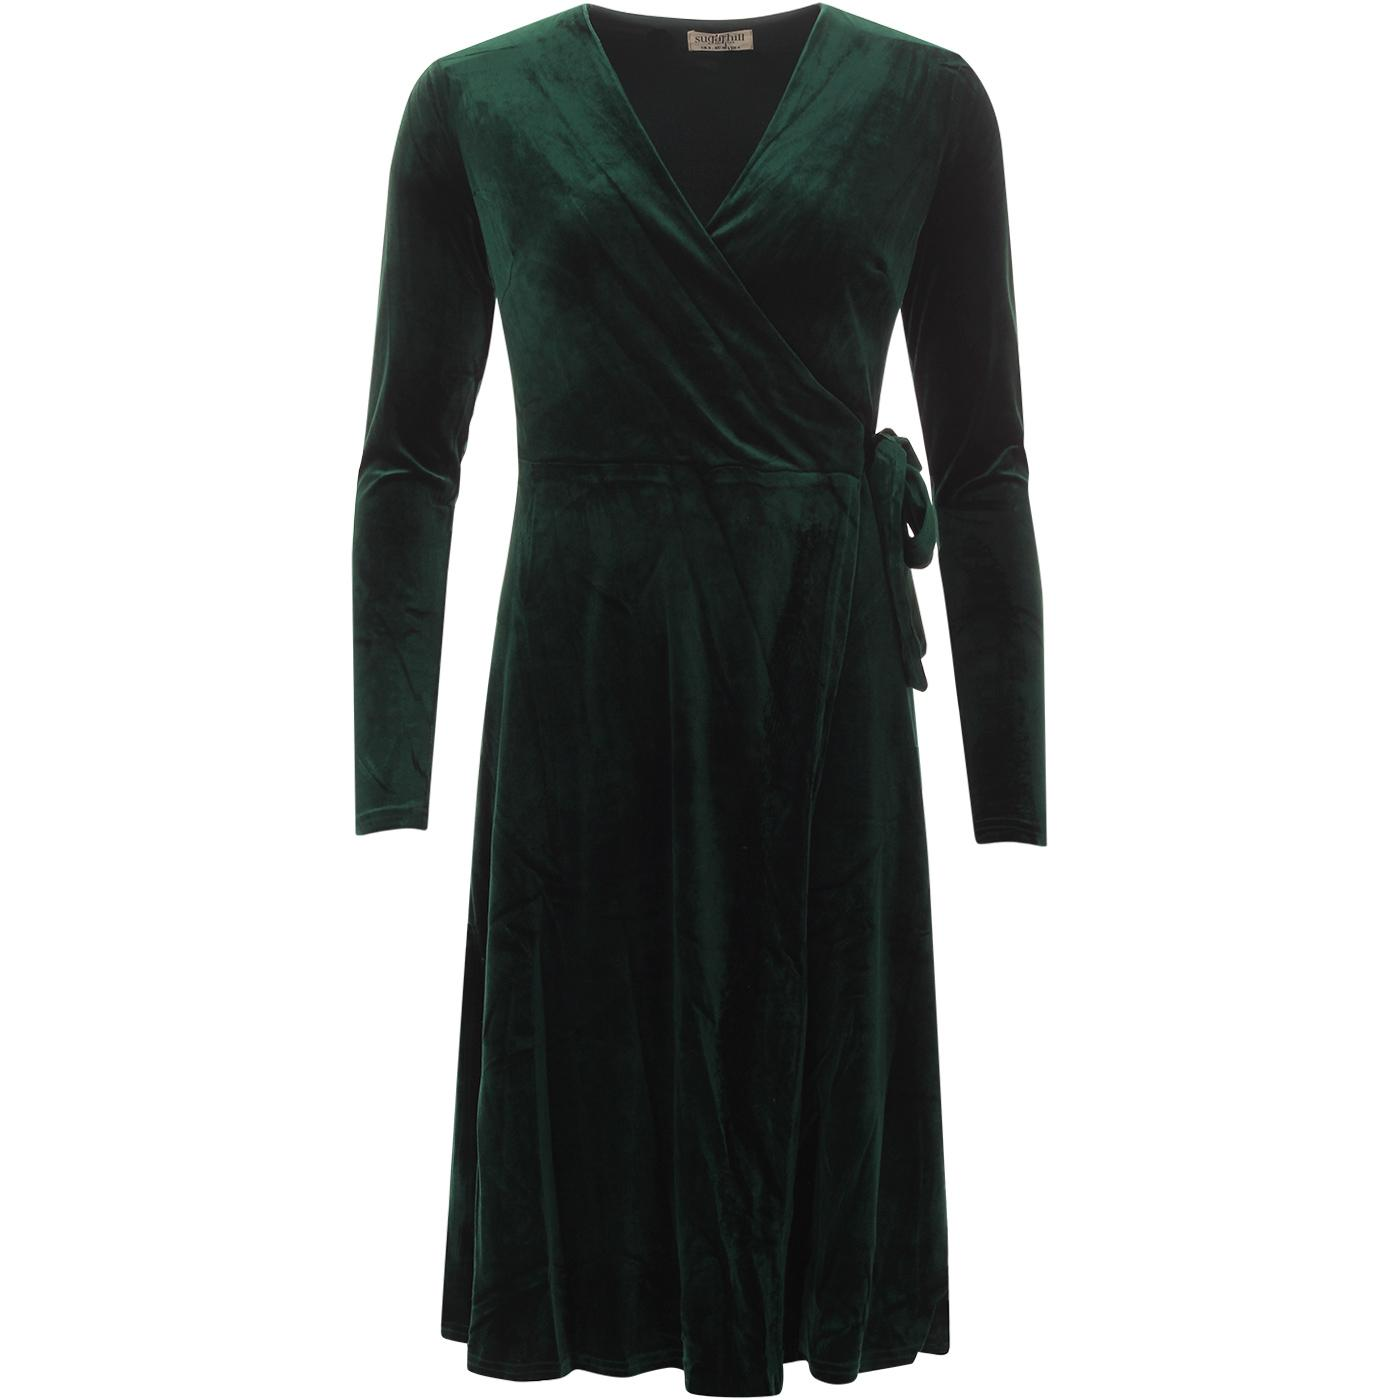 Trinity SUGARHILL BRIGHTON Velvet Midi Wrap Dress